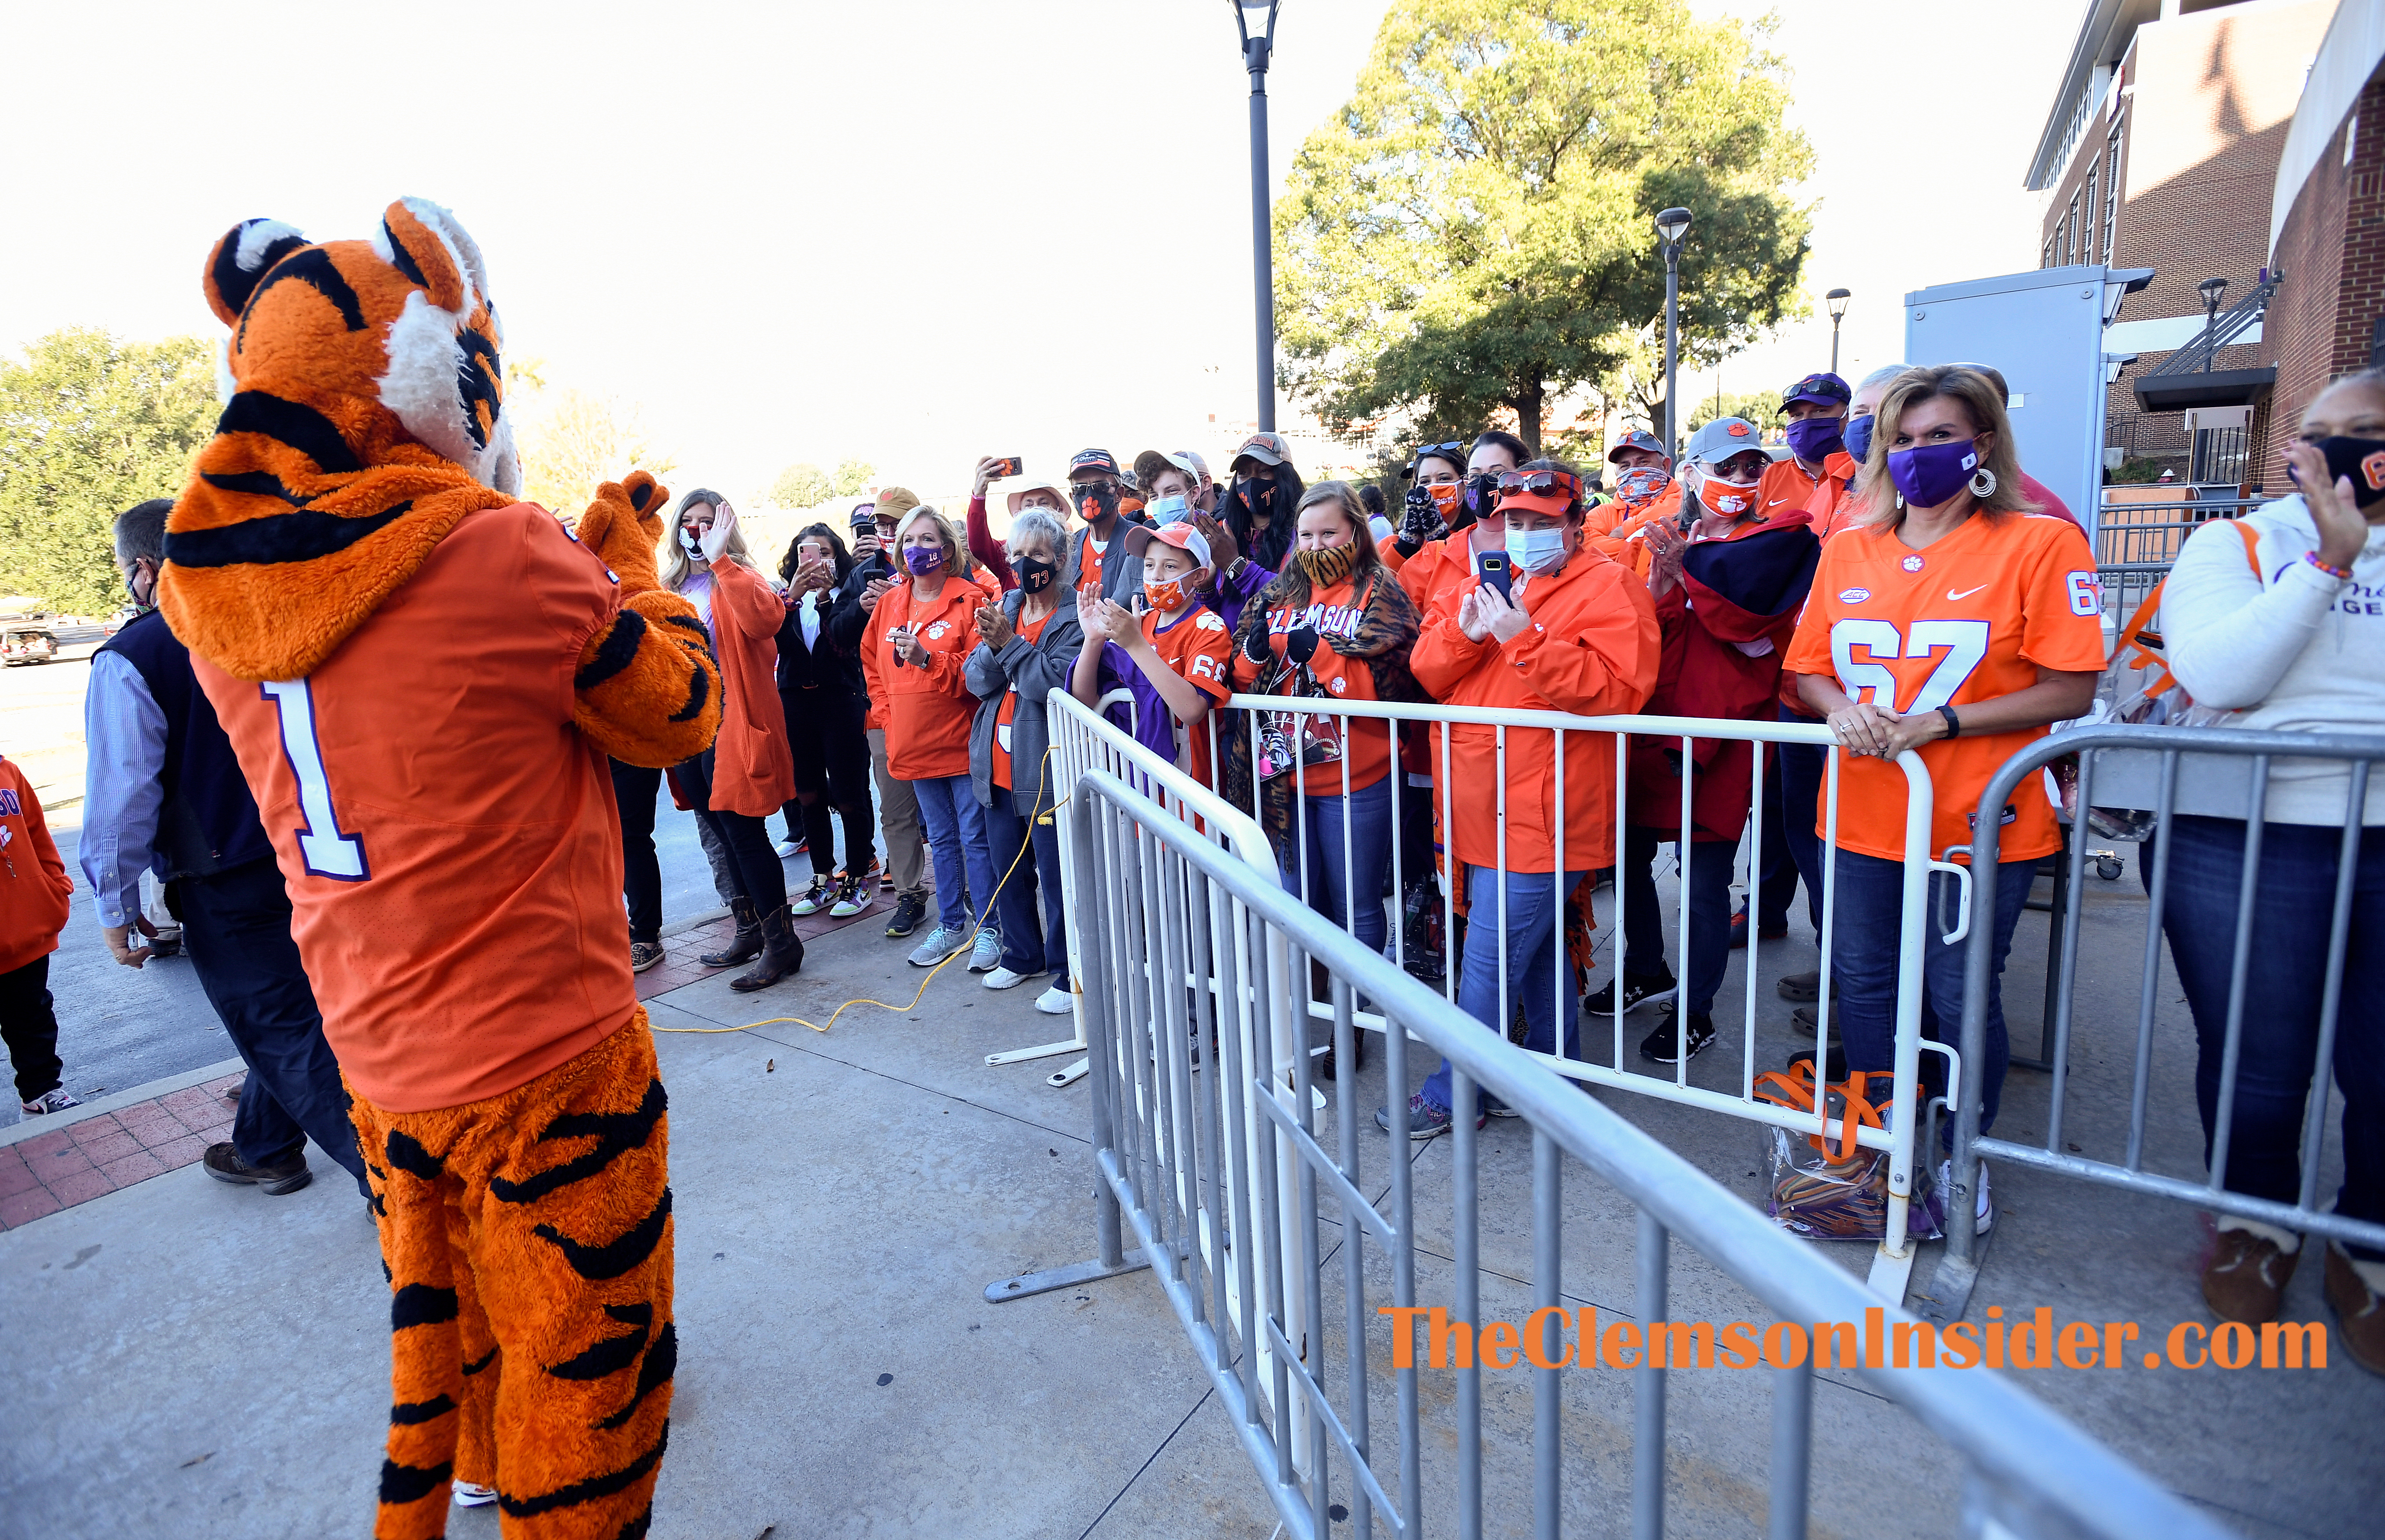 Clemson arrives at Clemson's Memorial Stadium before their game against Boston College Saturday, October 31, 2020. Bart Boatwright/The Clemson Insider